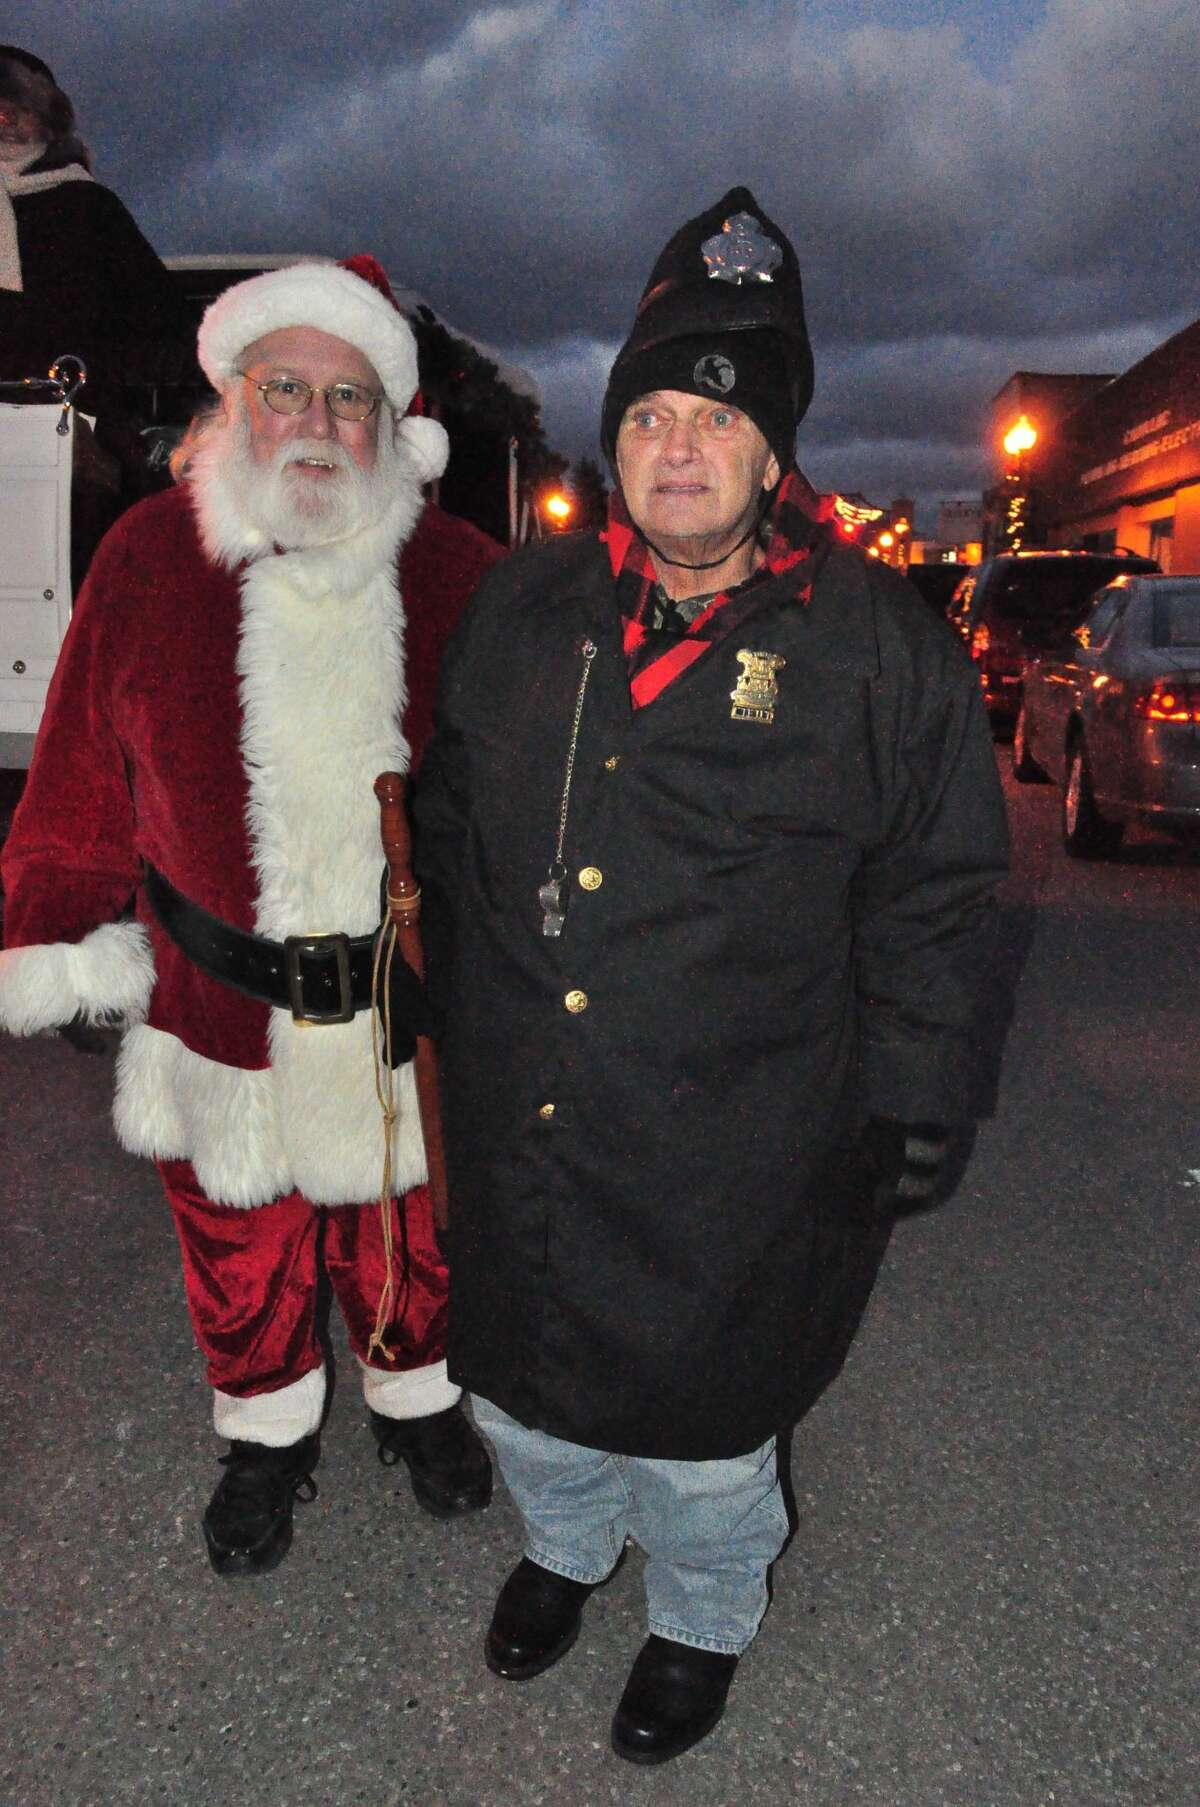 Bobby Stamp was known around Manistee as someone who spread Christmas cheer. In 2013, he was awarded an honorary badge at the Victorian Sleighbell Parade.